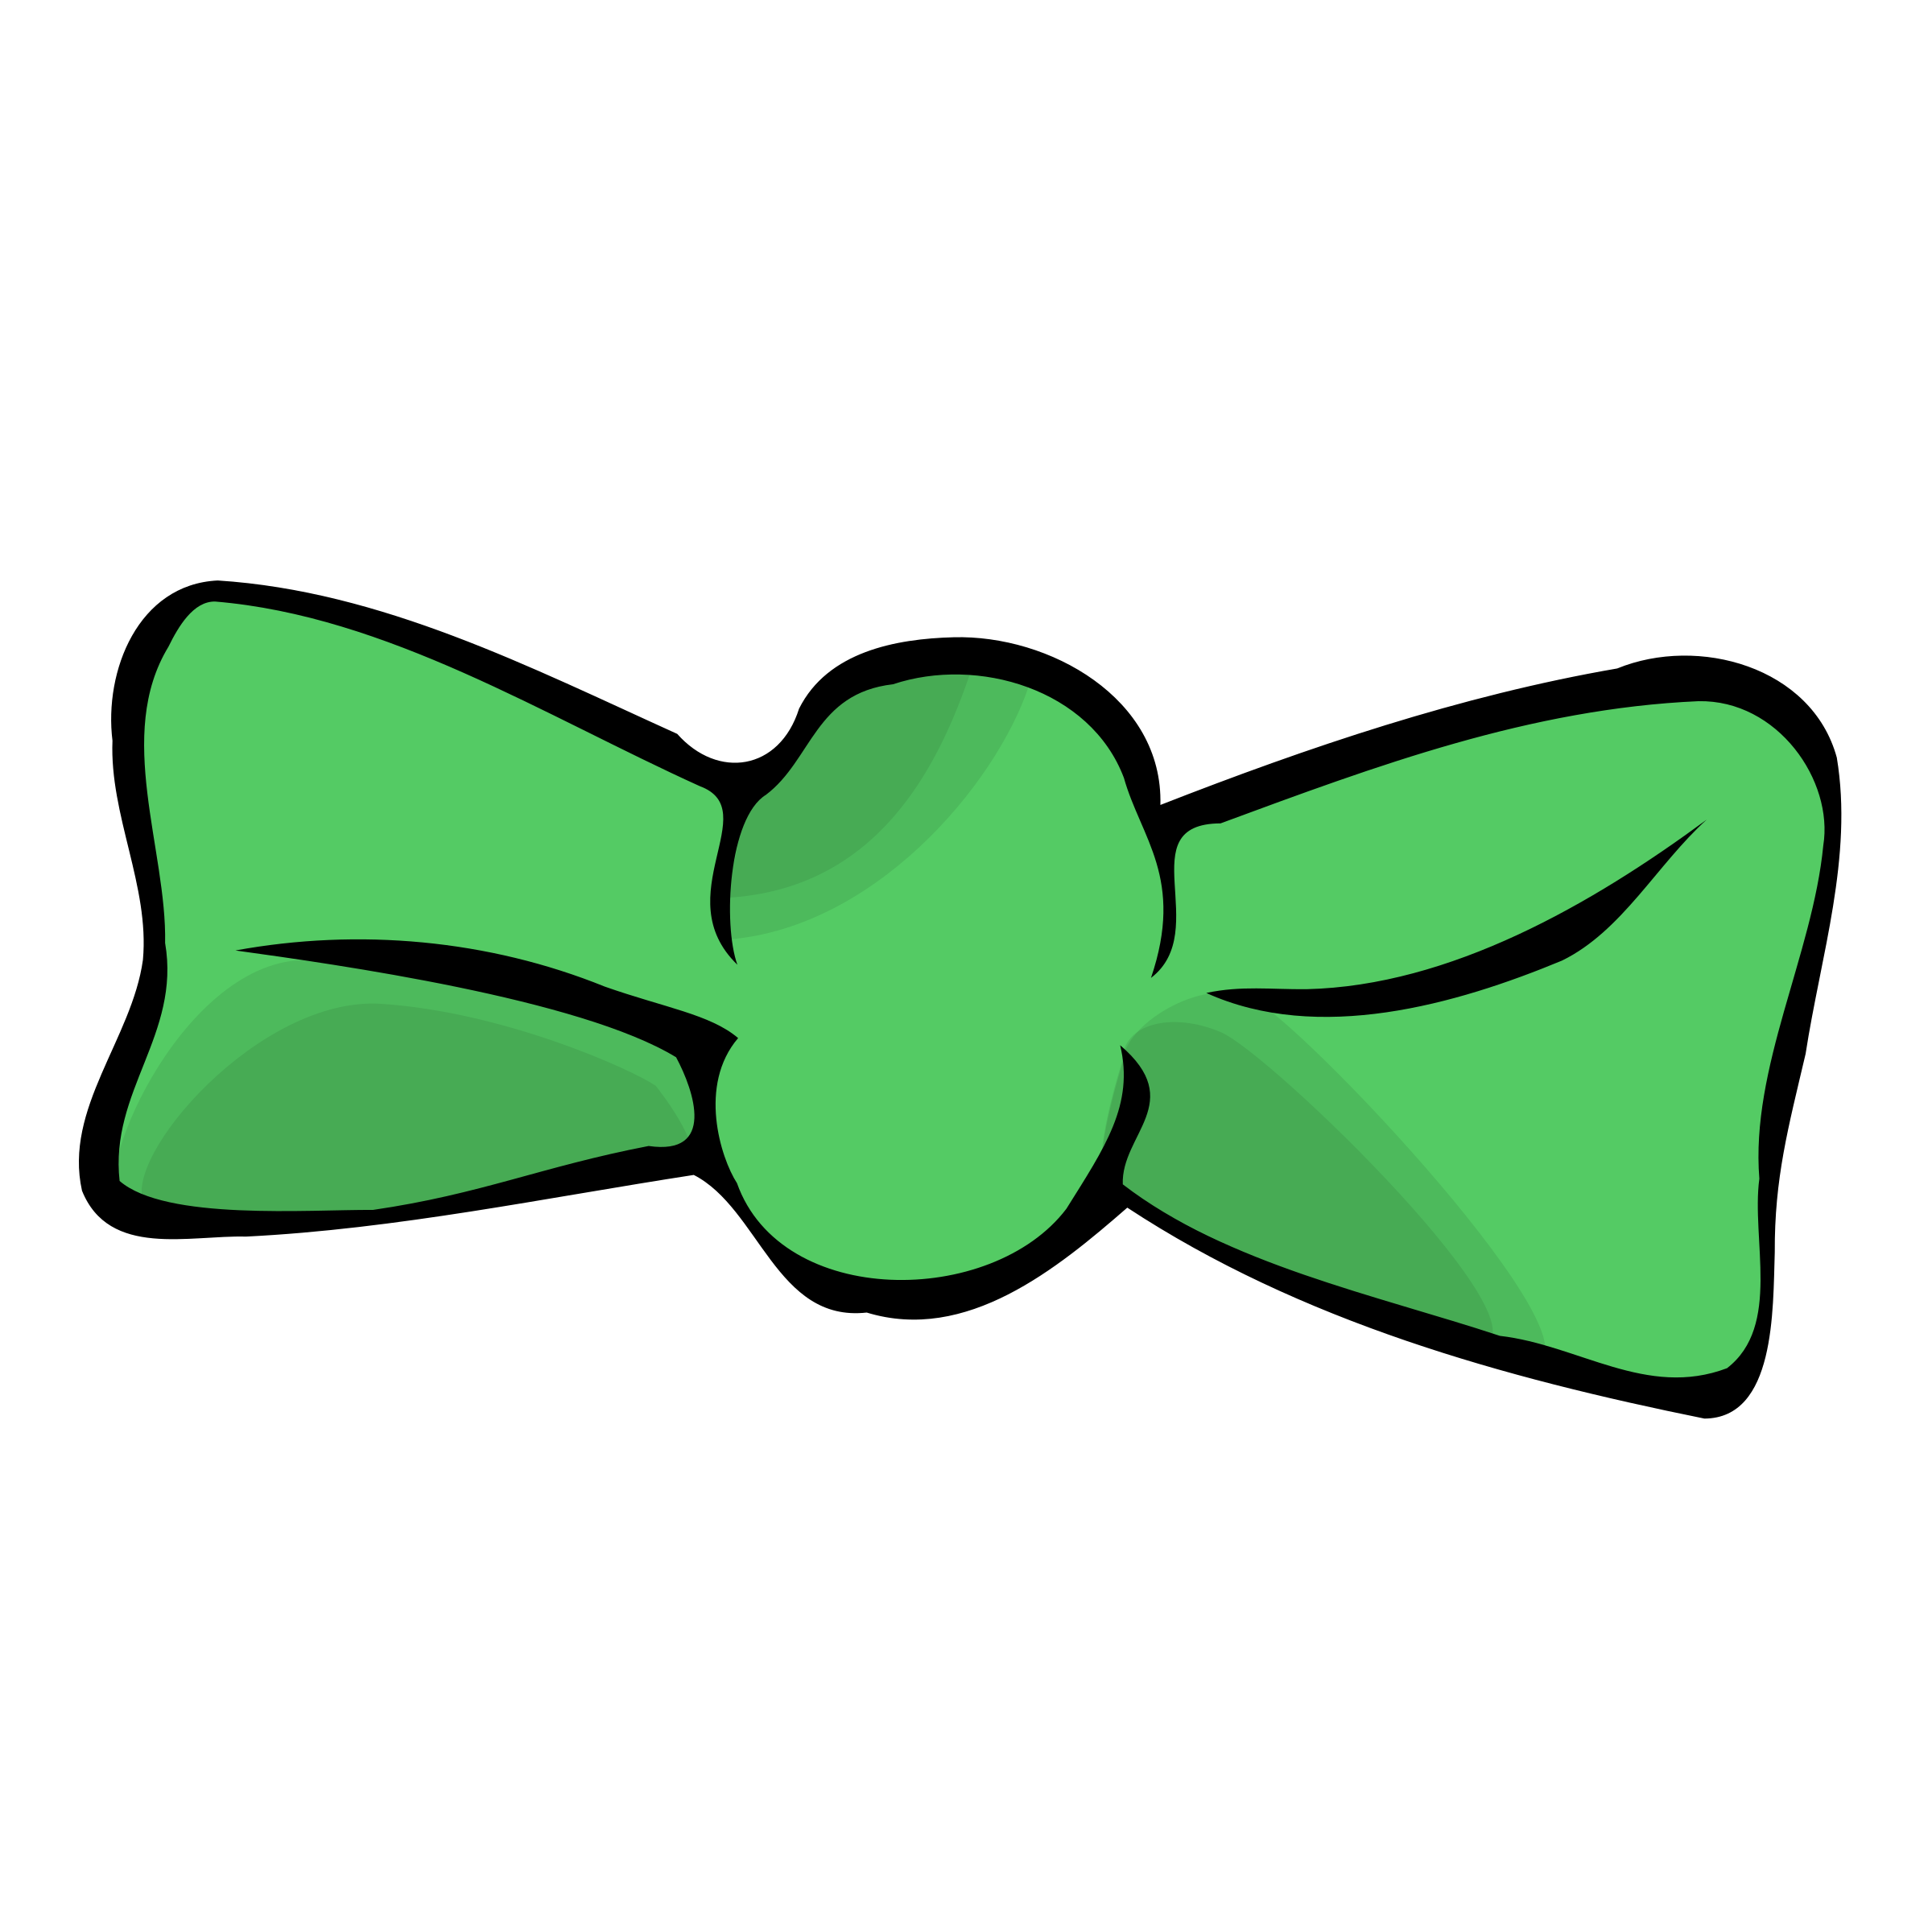 2400x2400 Bow Tie Clipart Lime Green